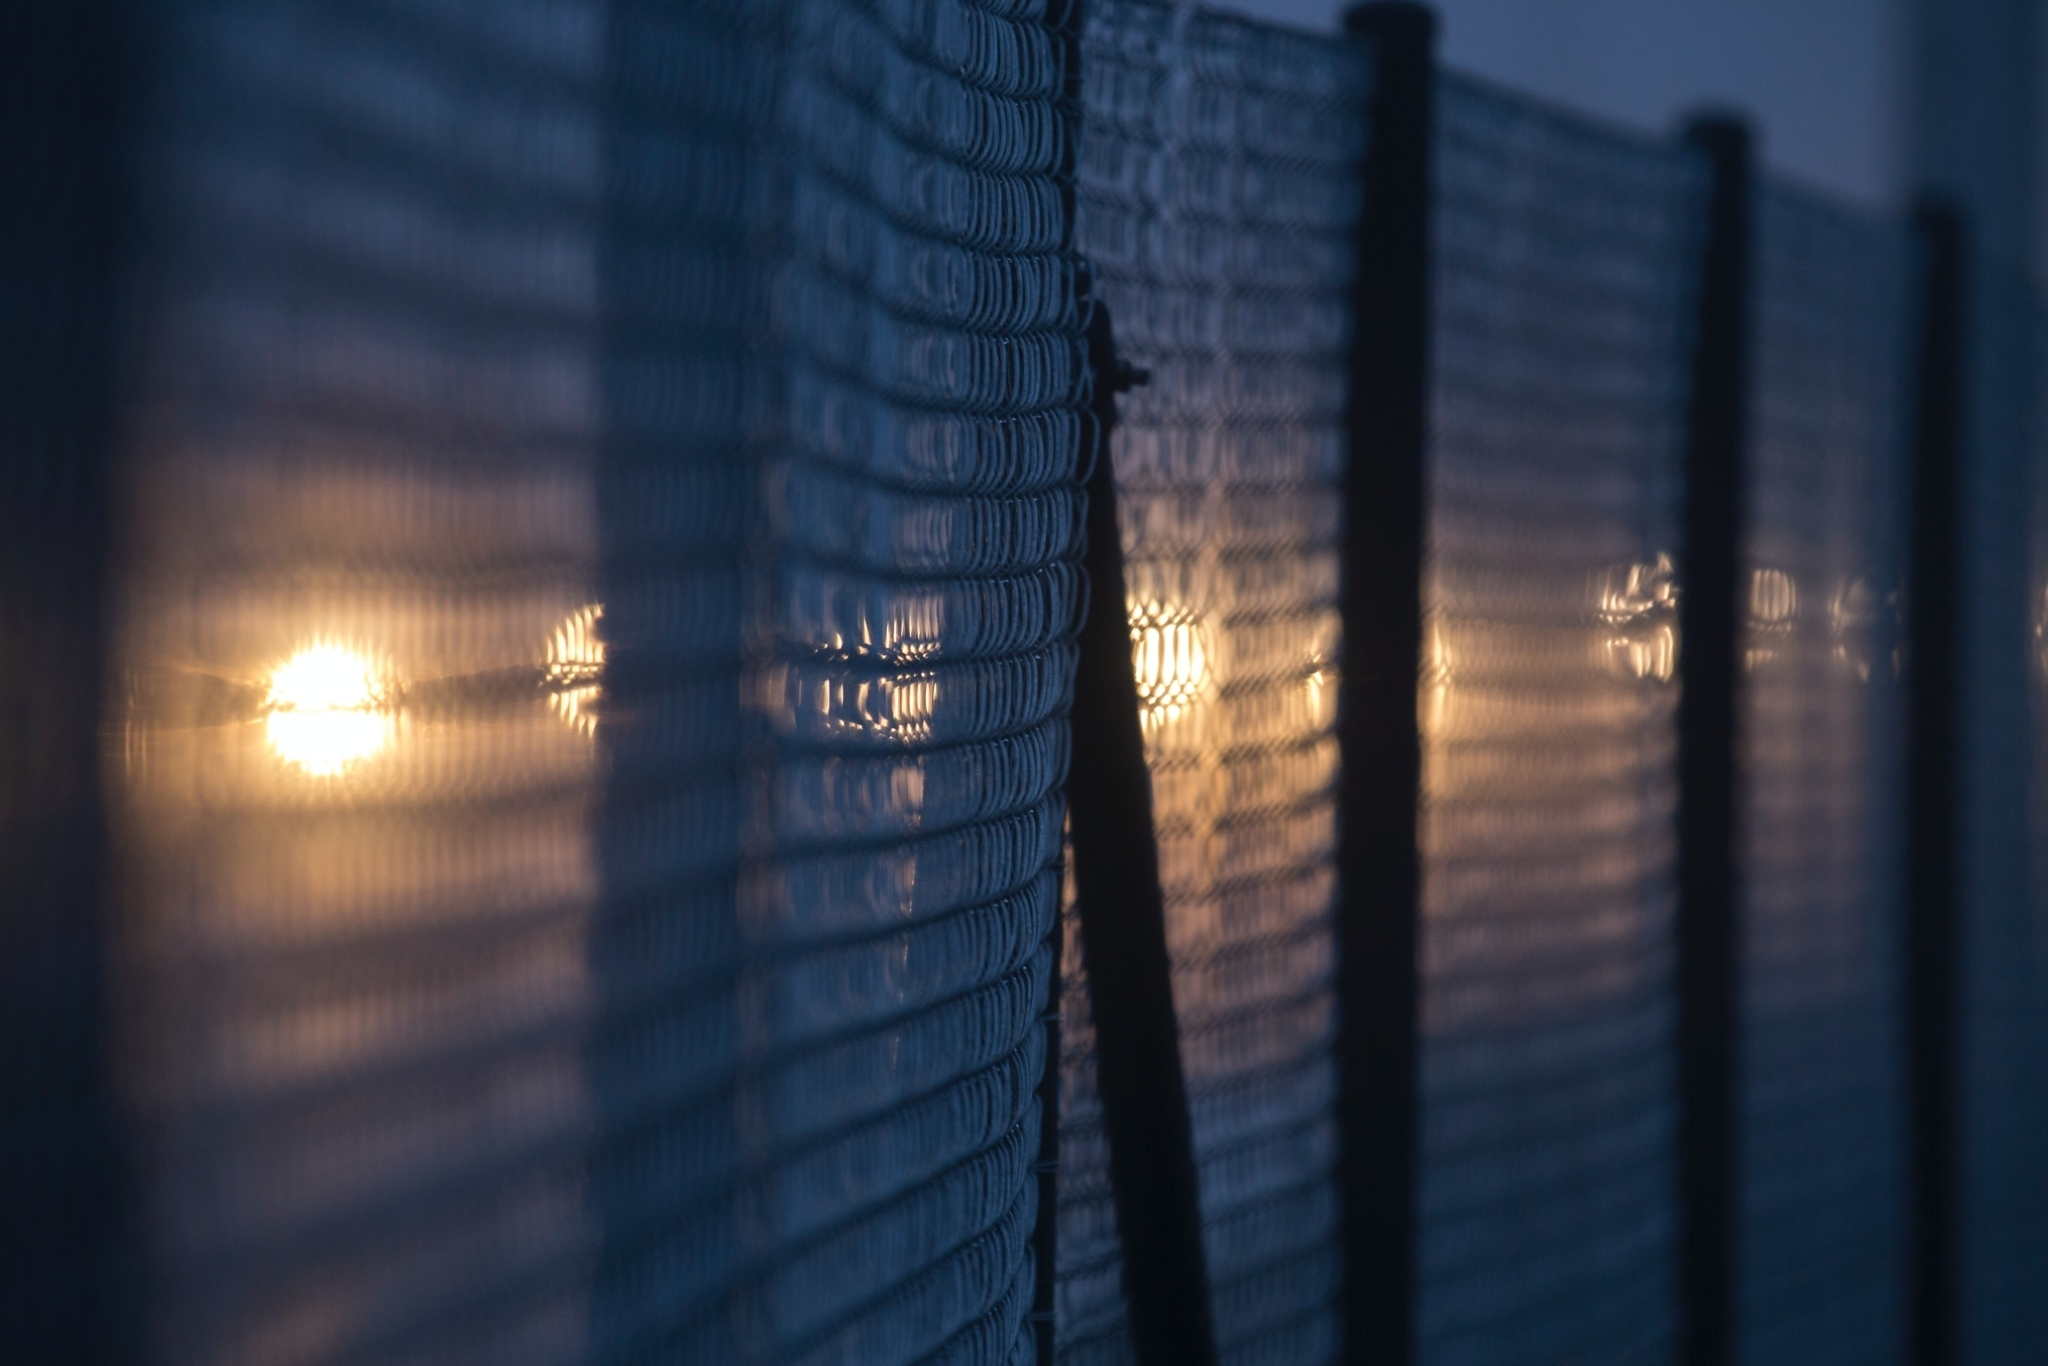 Fence with blurred lights in the background